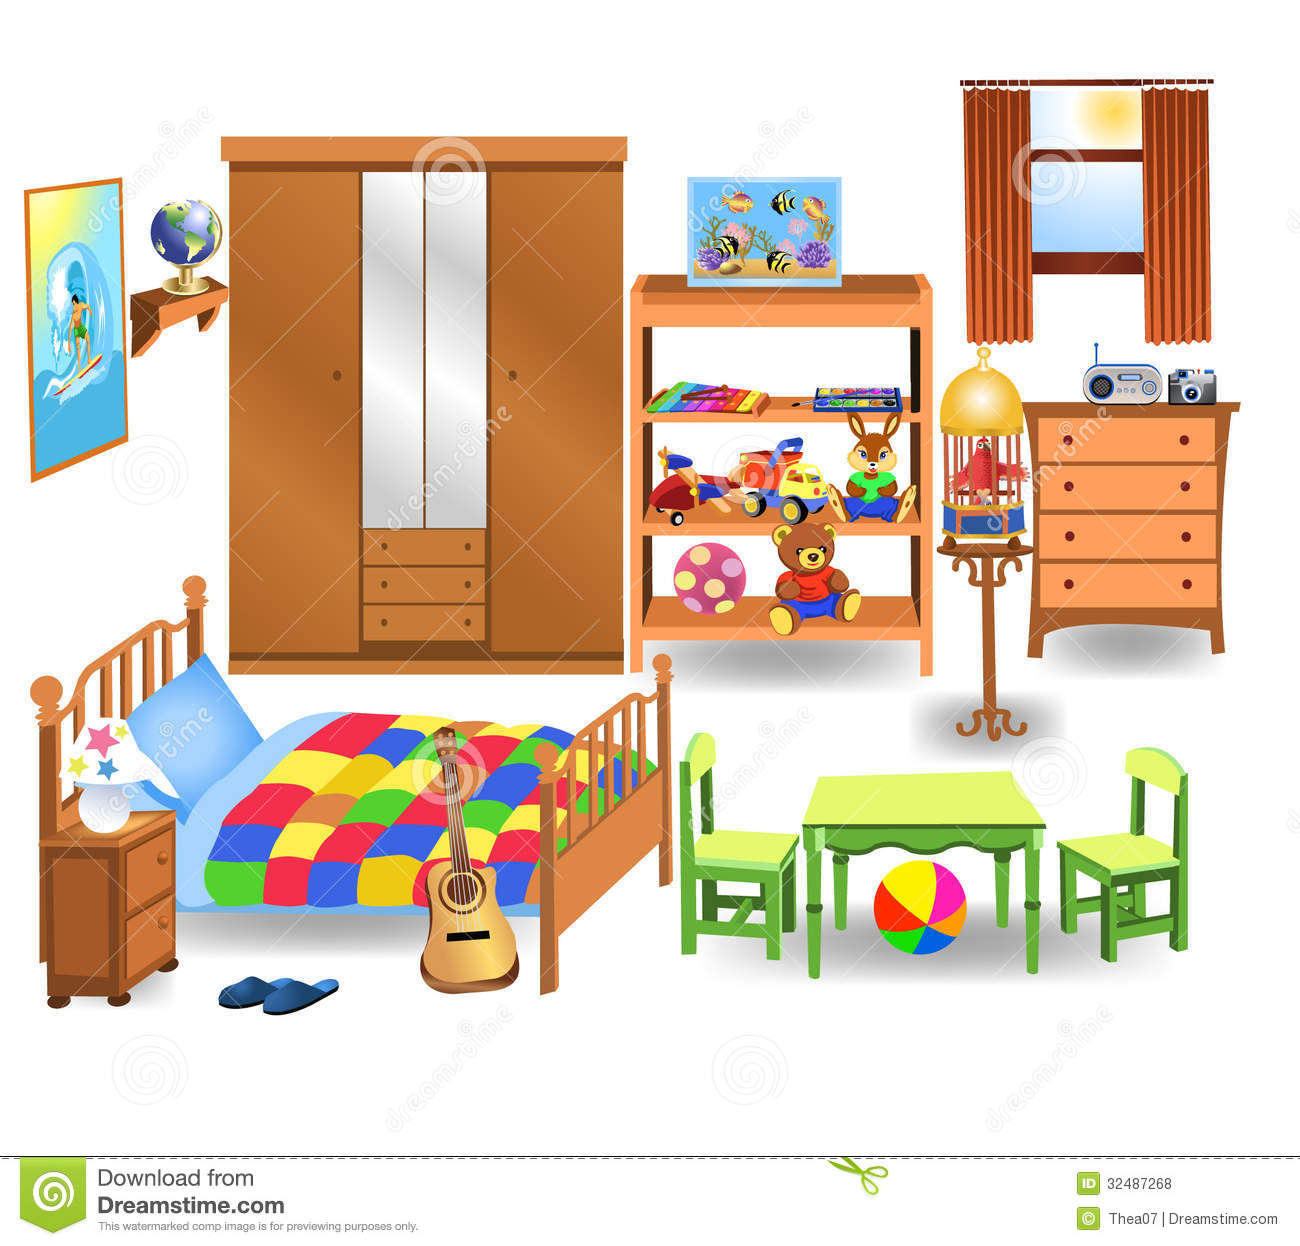 Interior Designs clipart childrens bedroom Art bedroom%20clipart Images Bedroom Free